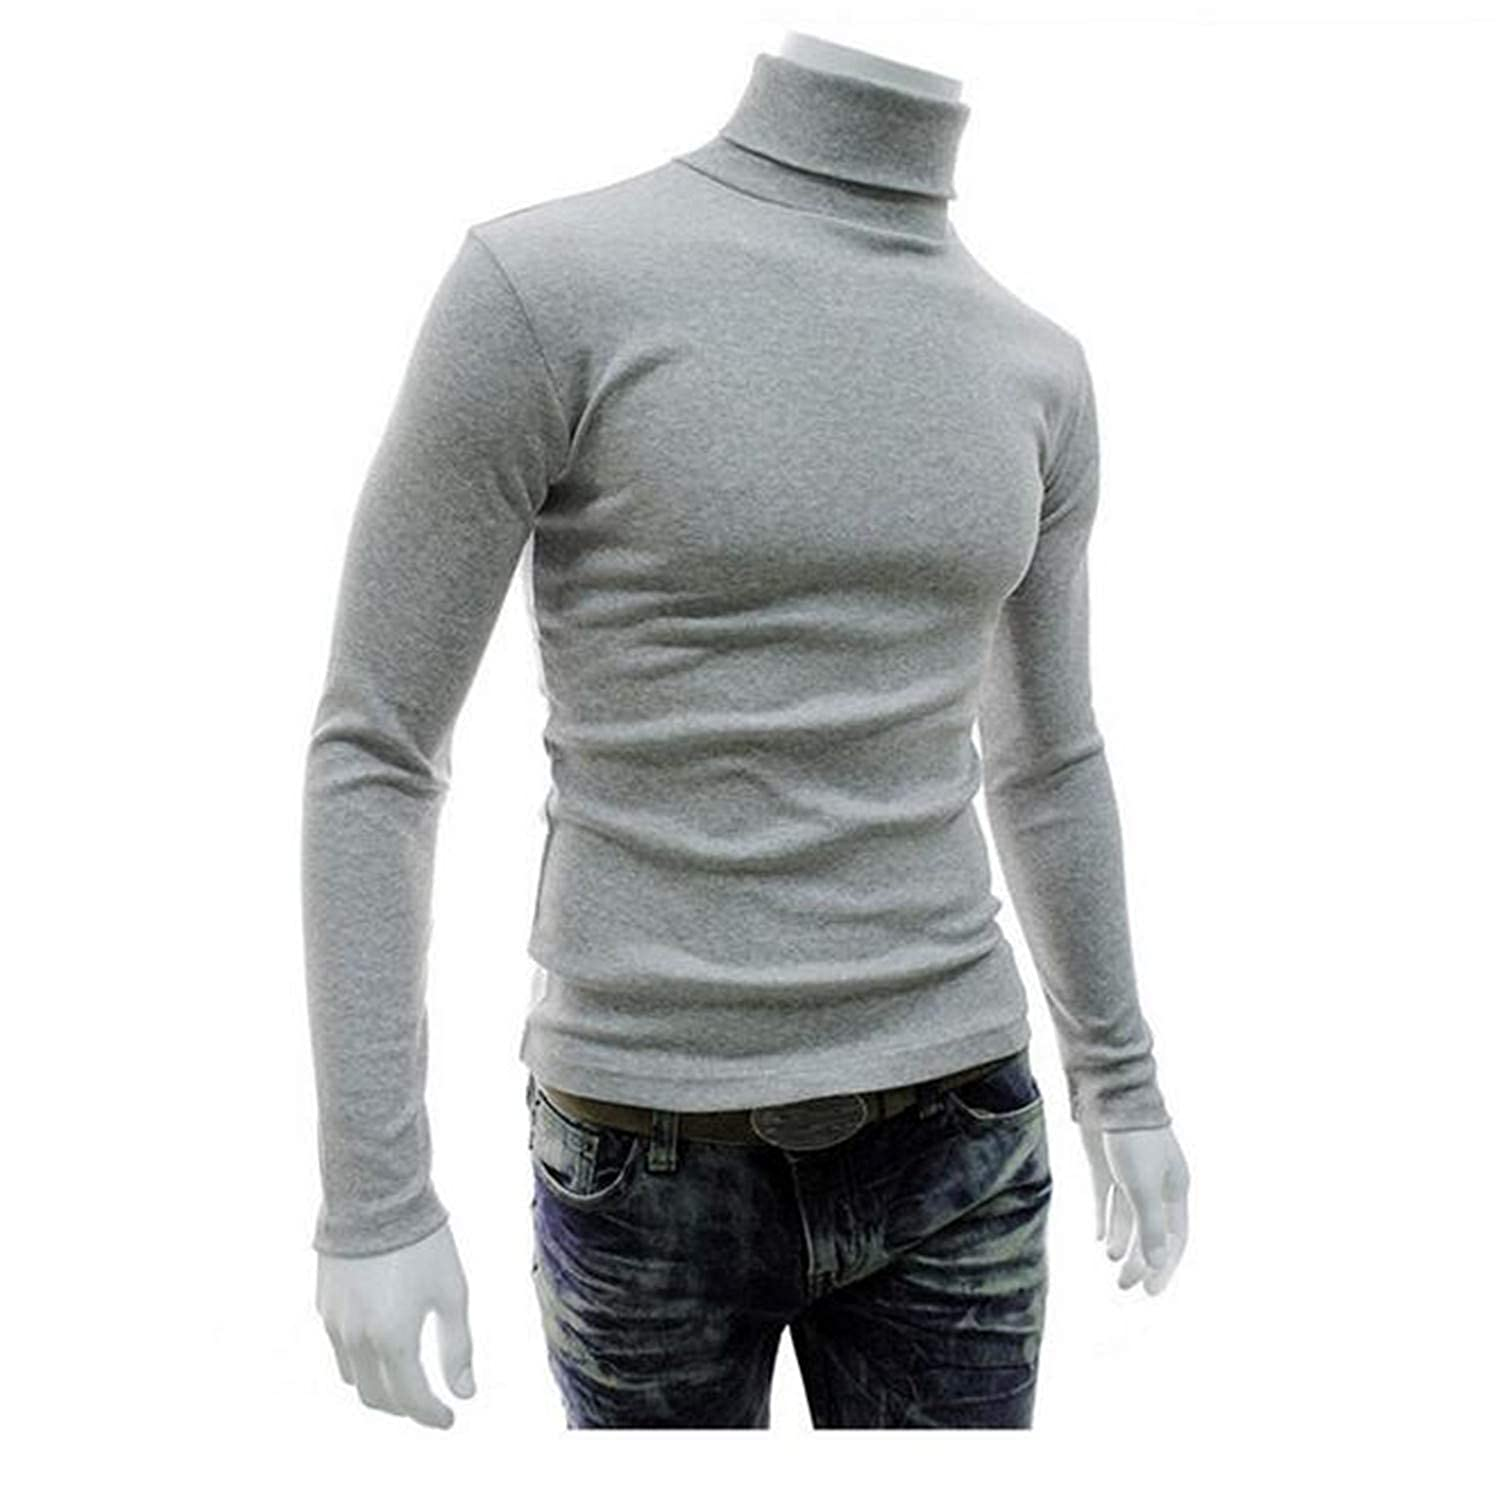 Susan1999 Autumn Winter Mens Sweater Mens Turtleneck Casual Sweater Mens Slim Fit Brand Knitted Pullovers